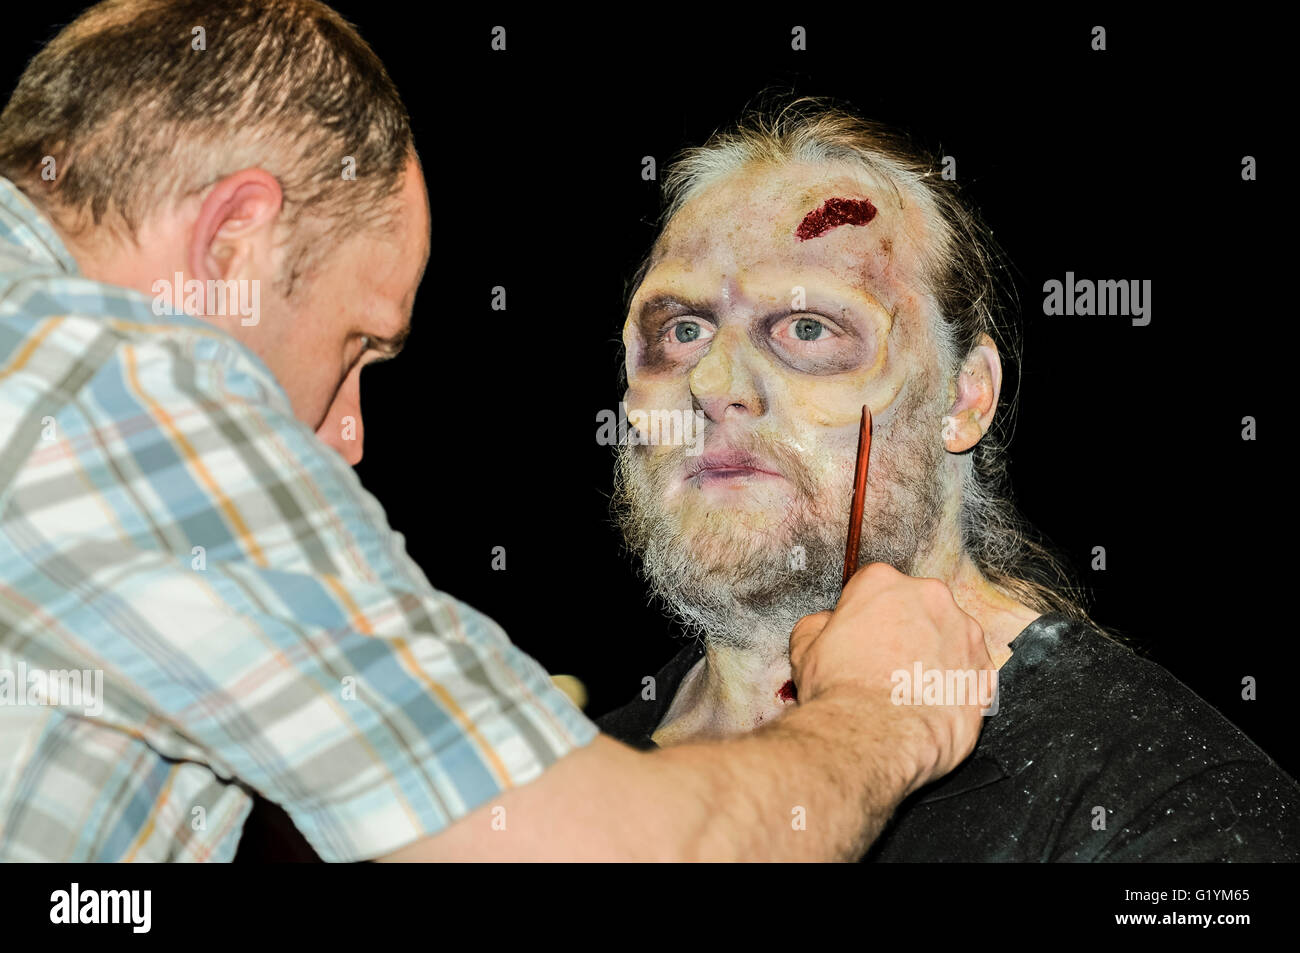 A special effects makeup artist applies latex prosthetics and fake wounds to a male actor at